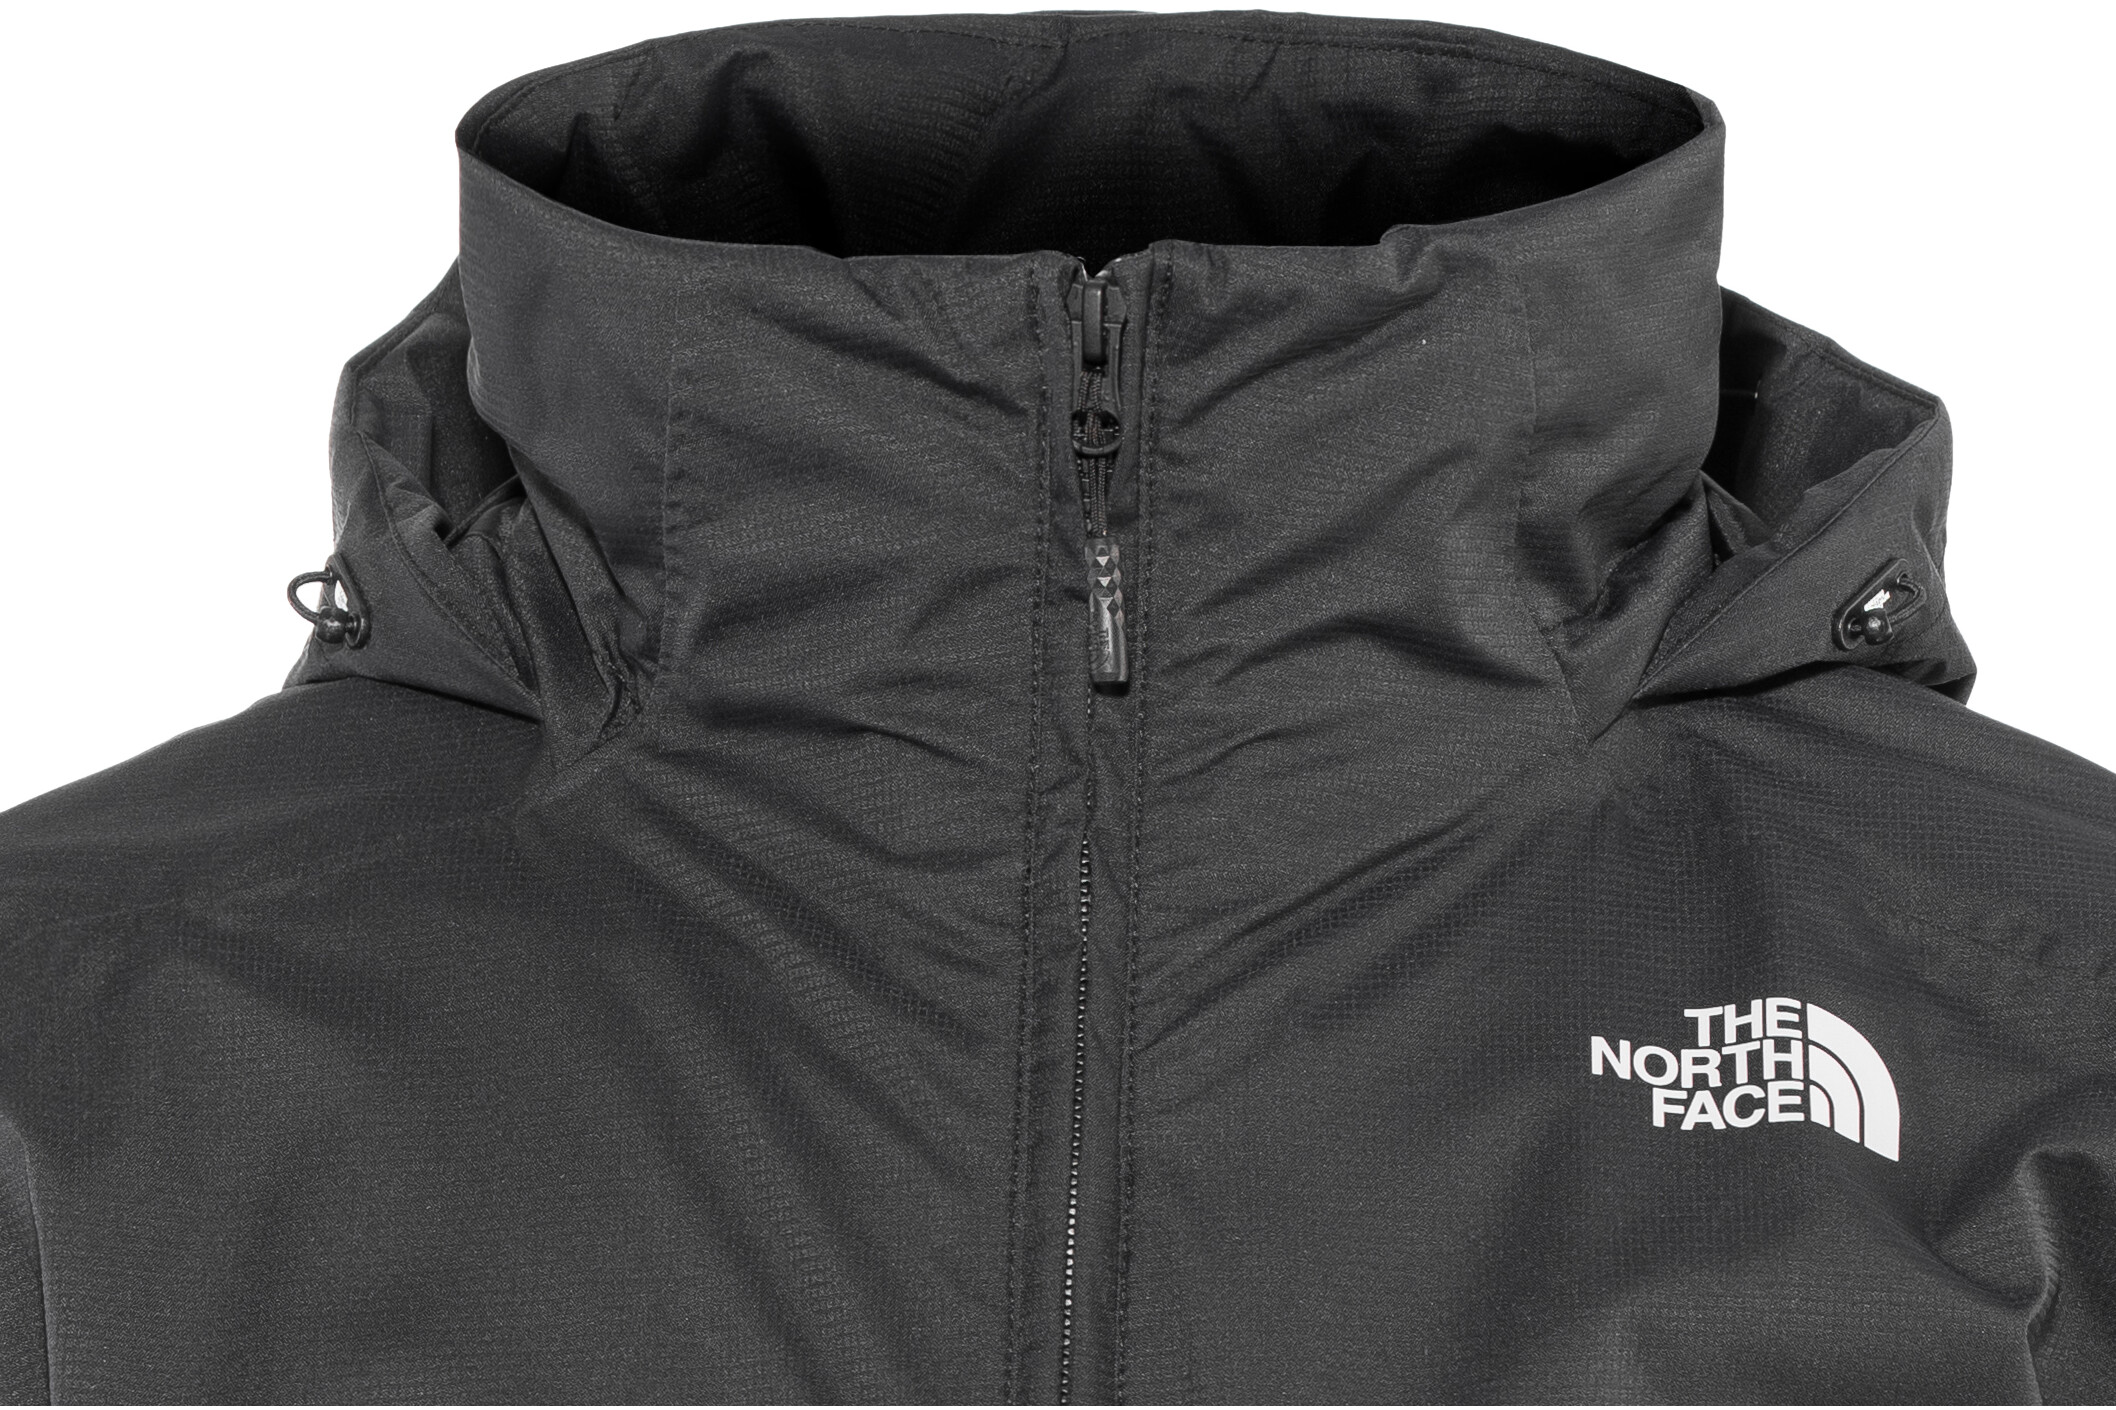 The North Face Frost Peak II Giacca Uomo nero su Addnature d41c3279f002